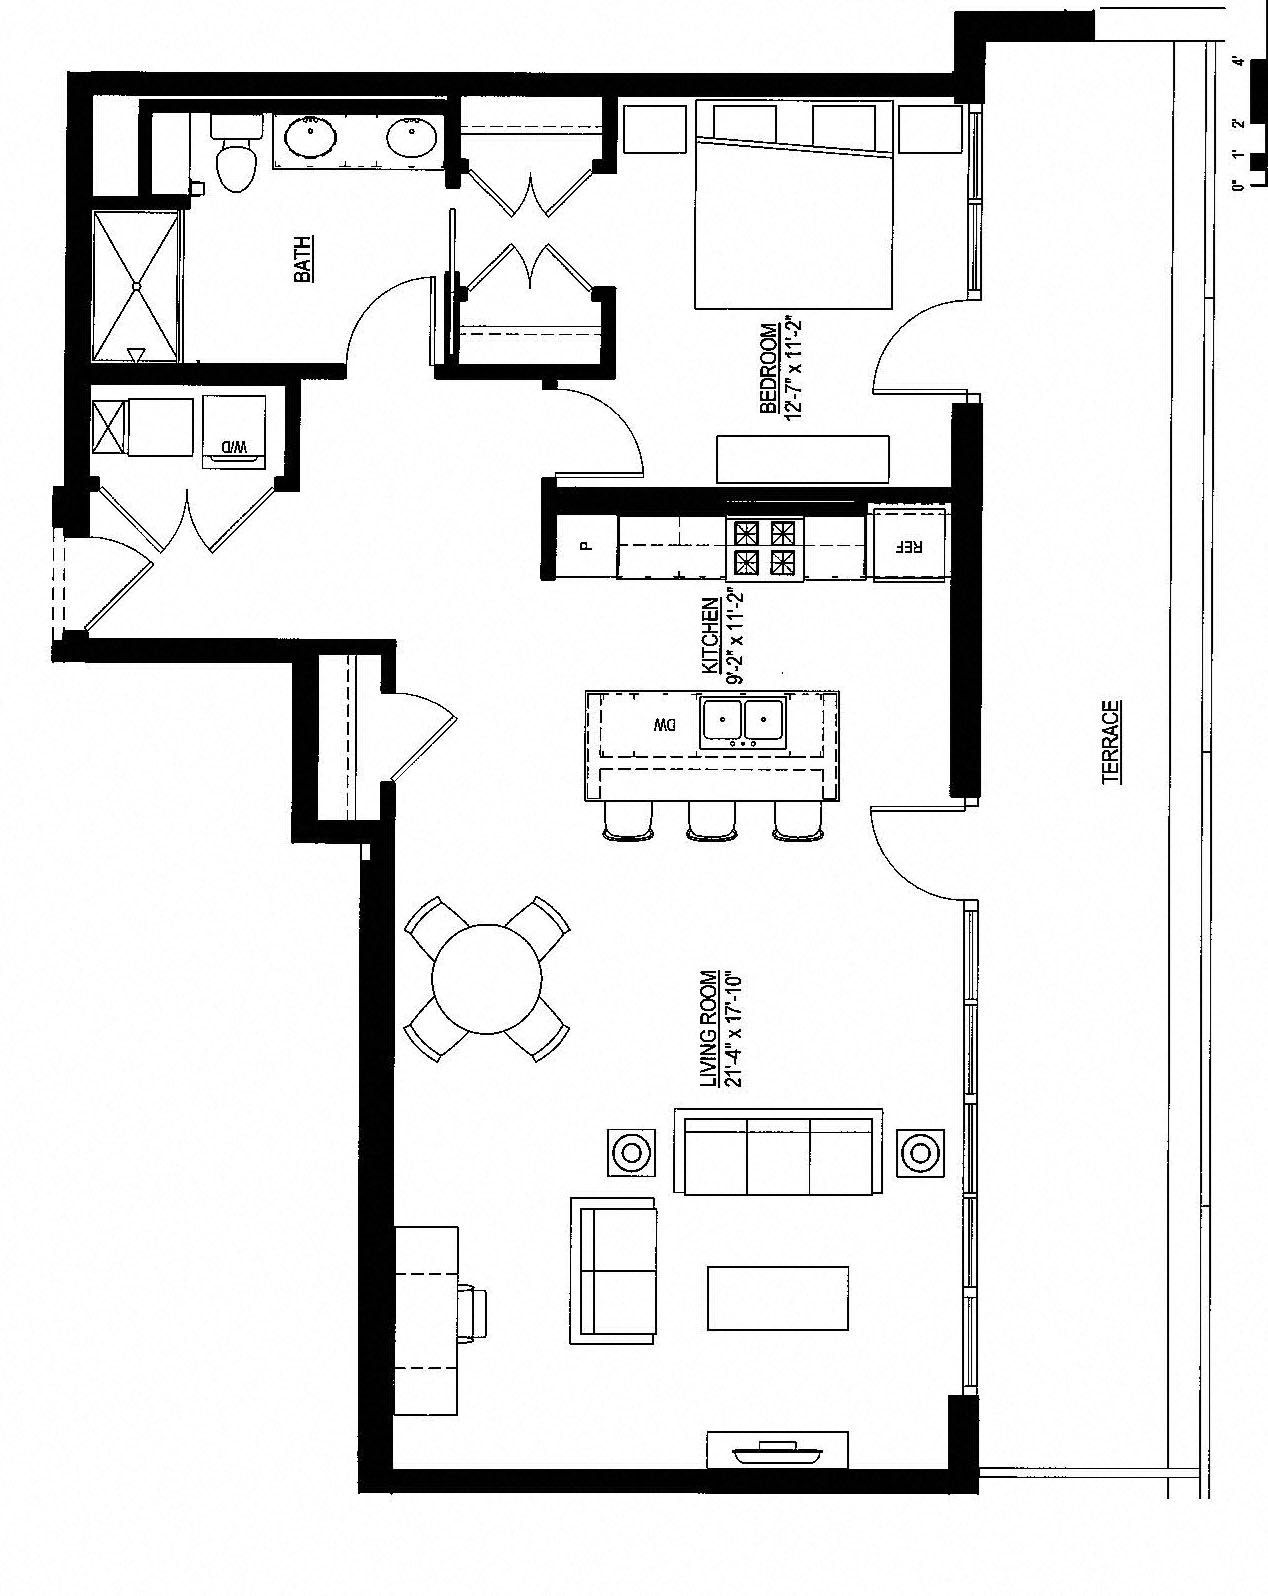 1049sf- Penthouse w/Balcony Floor Plan 1